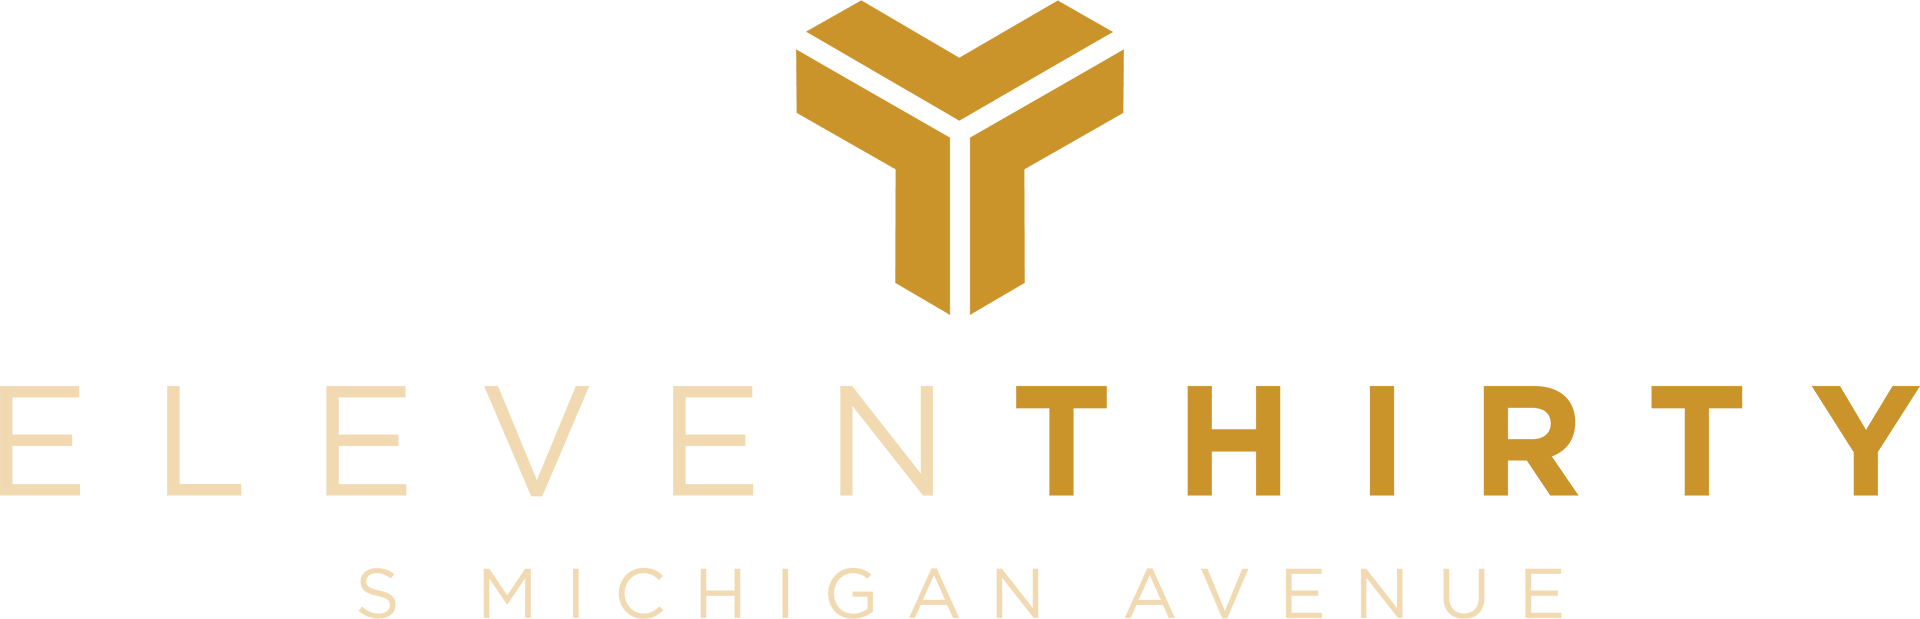 The logo for Eleven Thirty.